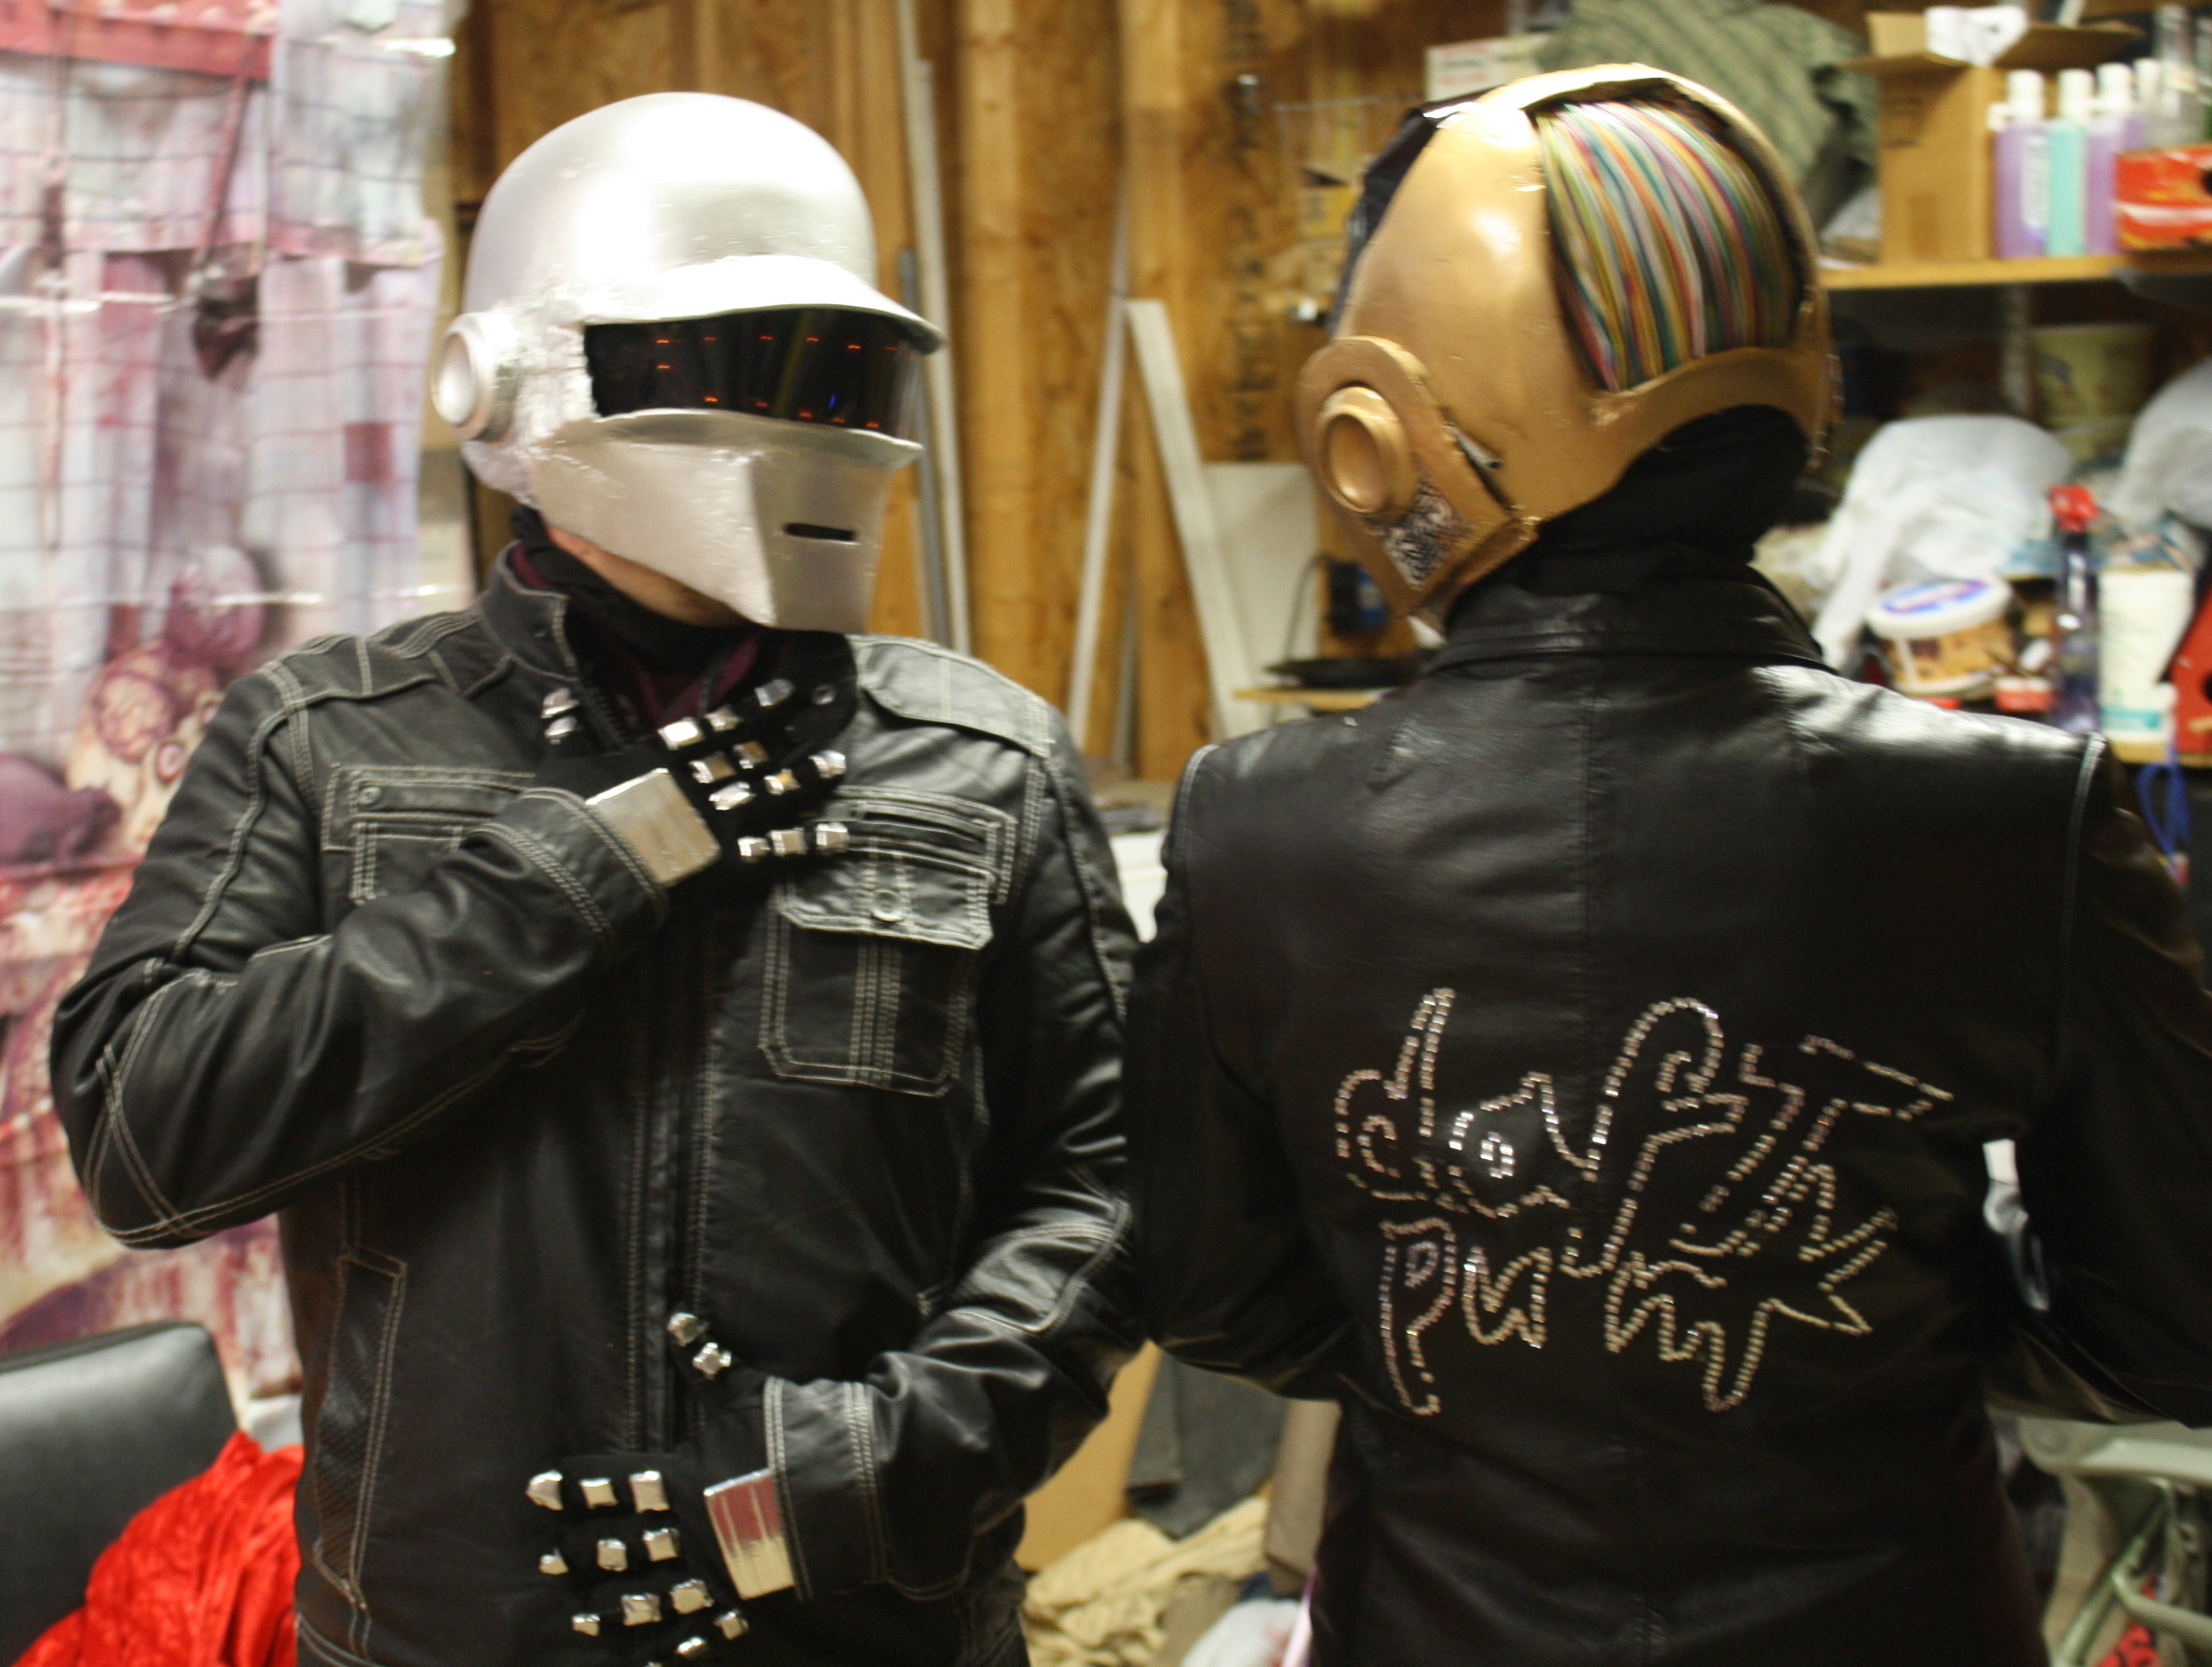 Daft Punk helmets and complete costumes withOUT using a vacu-form